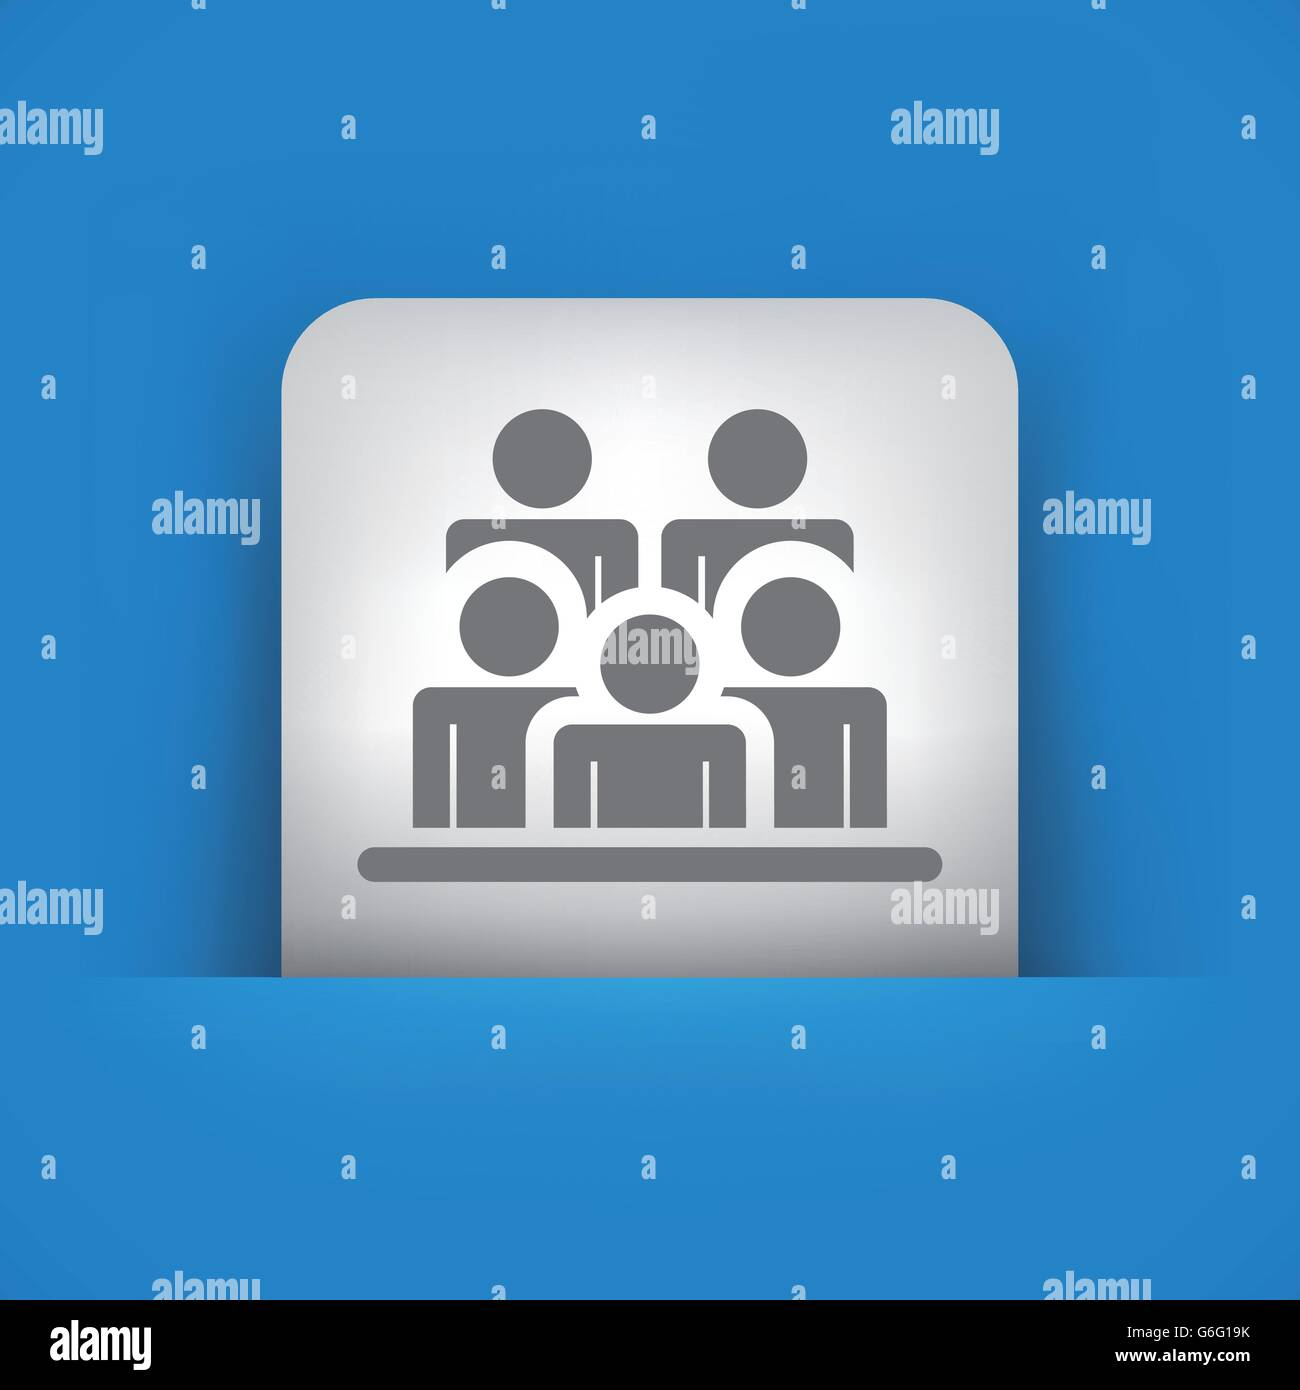 Vector illustration of single blue and gray isolated icon. - Stock Vector